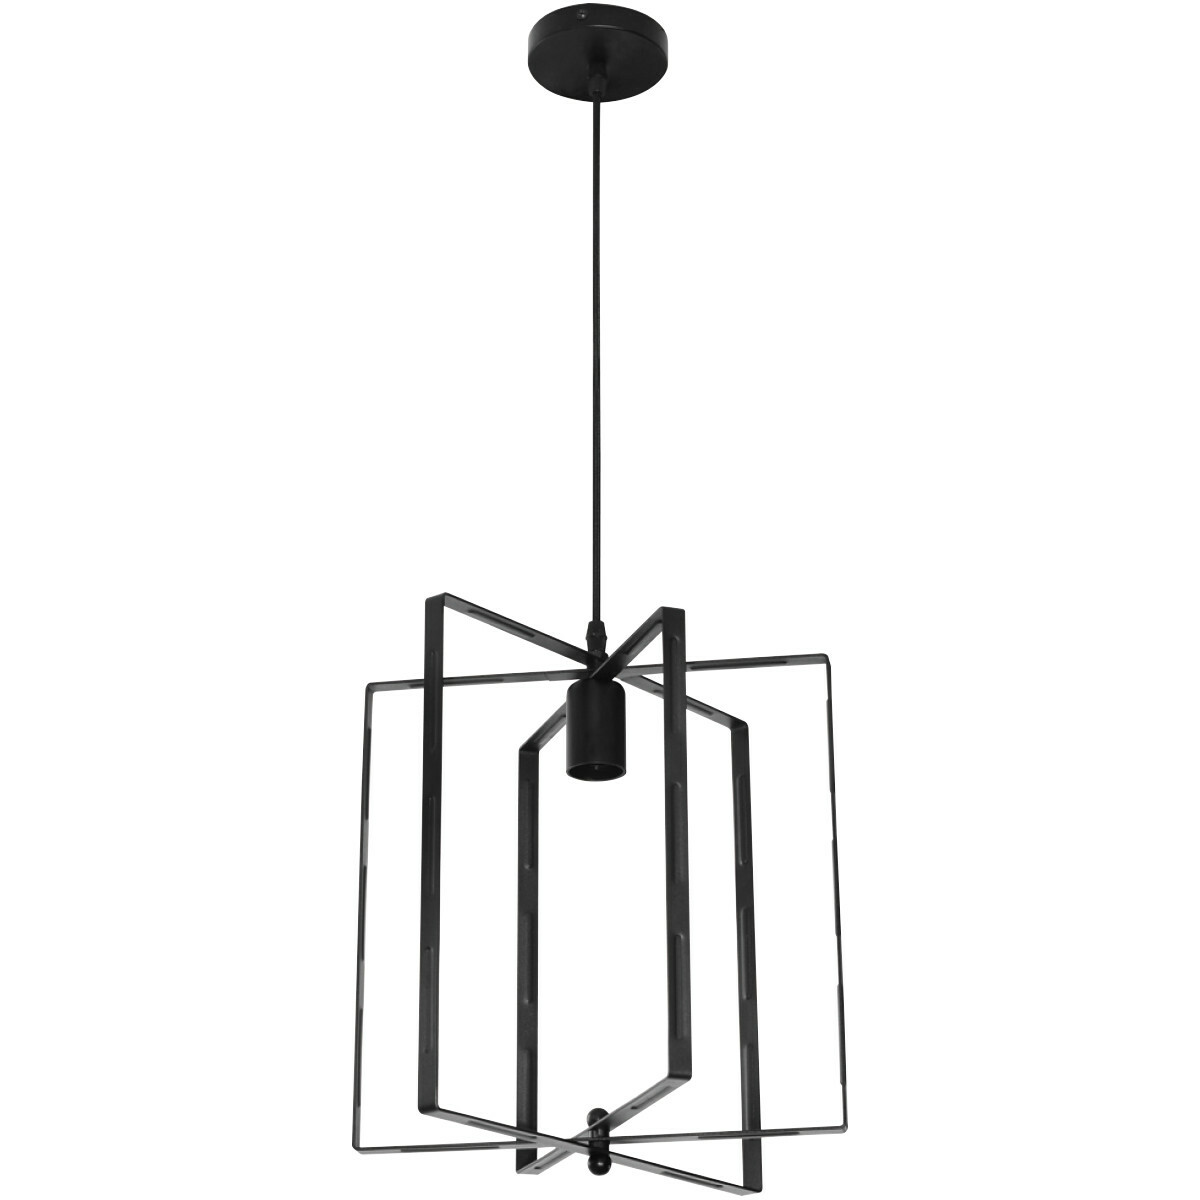 PHILIPS - LED Hanglamp - SceneSwitch Filament 827 A60 - Noby Industrieel - E27 Fitting - Dimbaar - 1